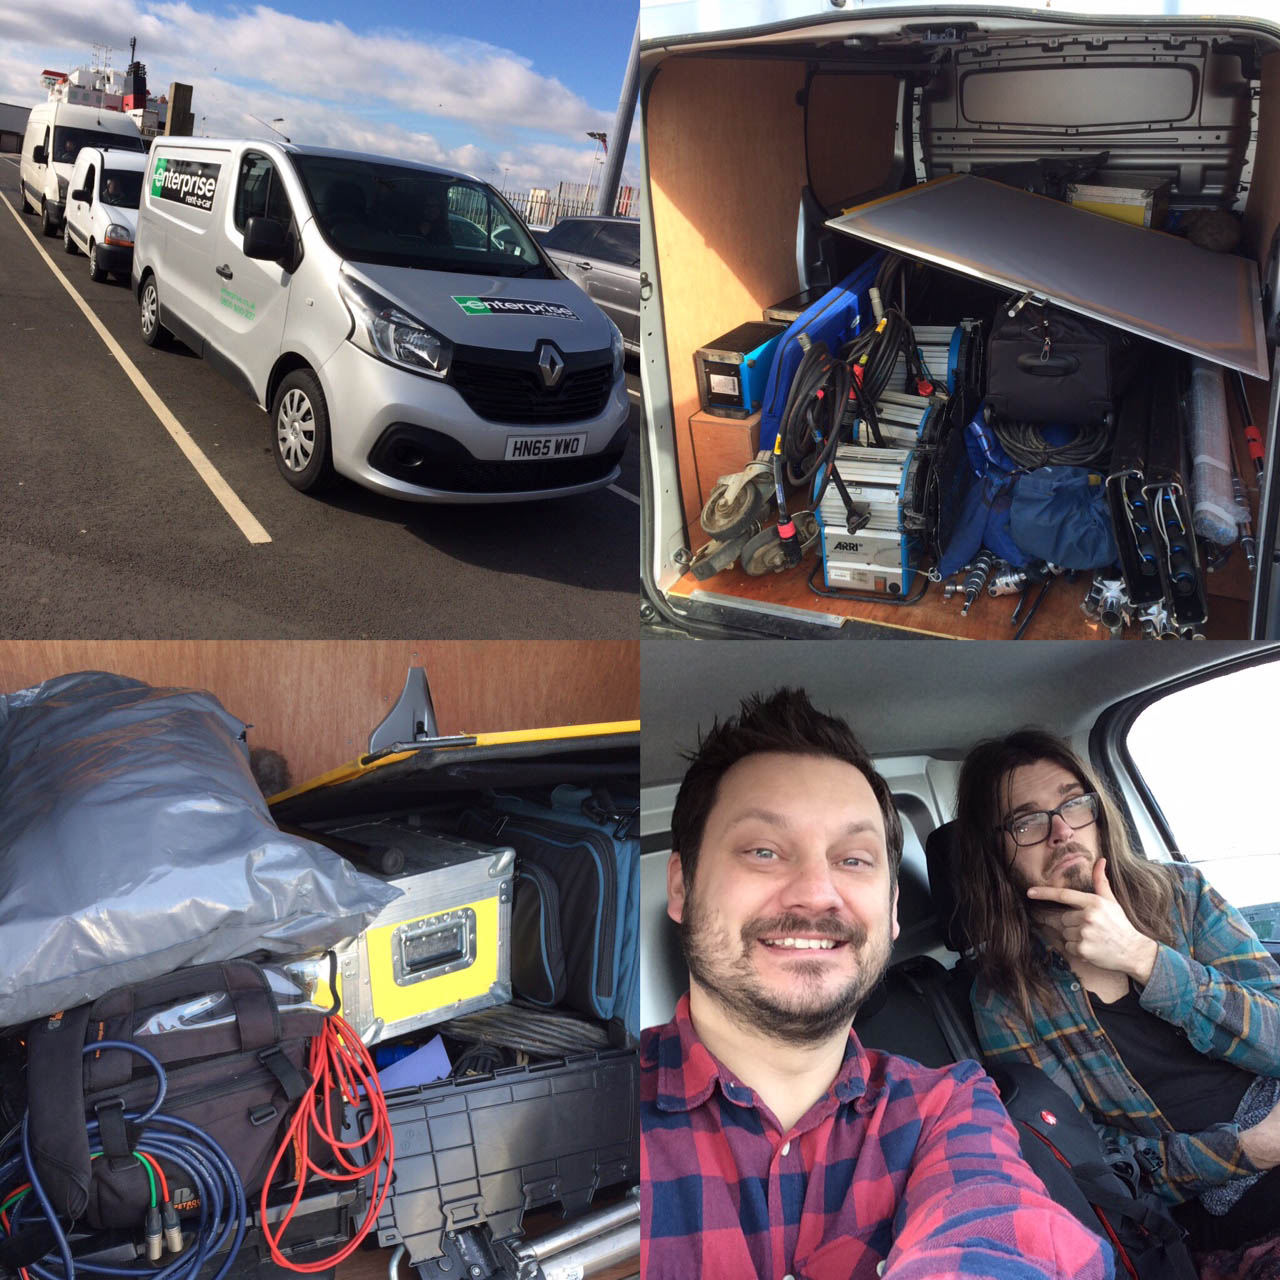 Van hired to transport all of the camera, grip and lighting gear